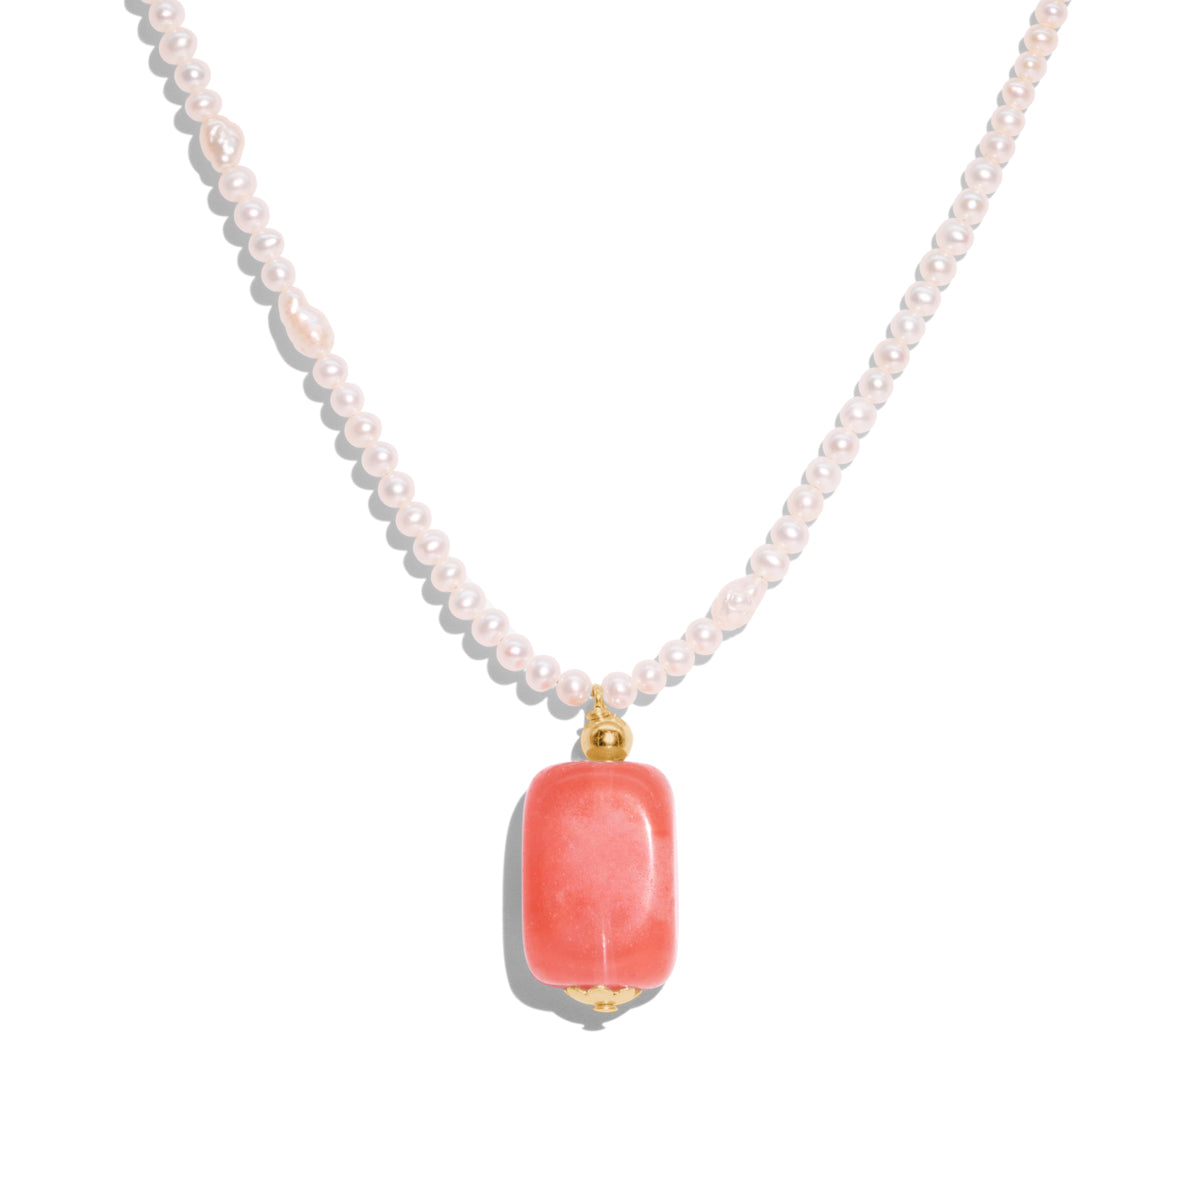 The Gold Cherry Drop Frost Necklace